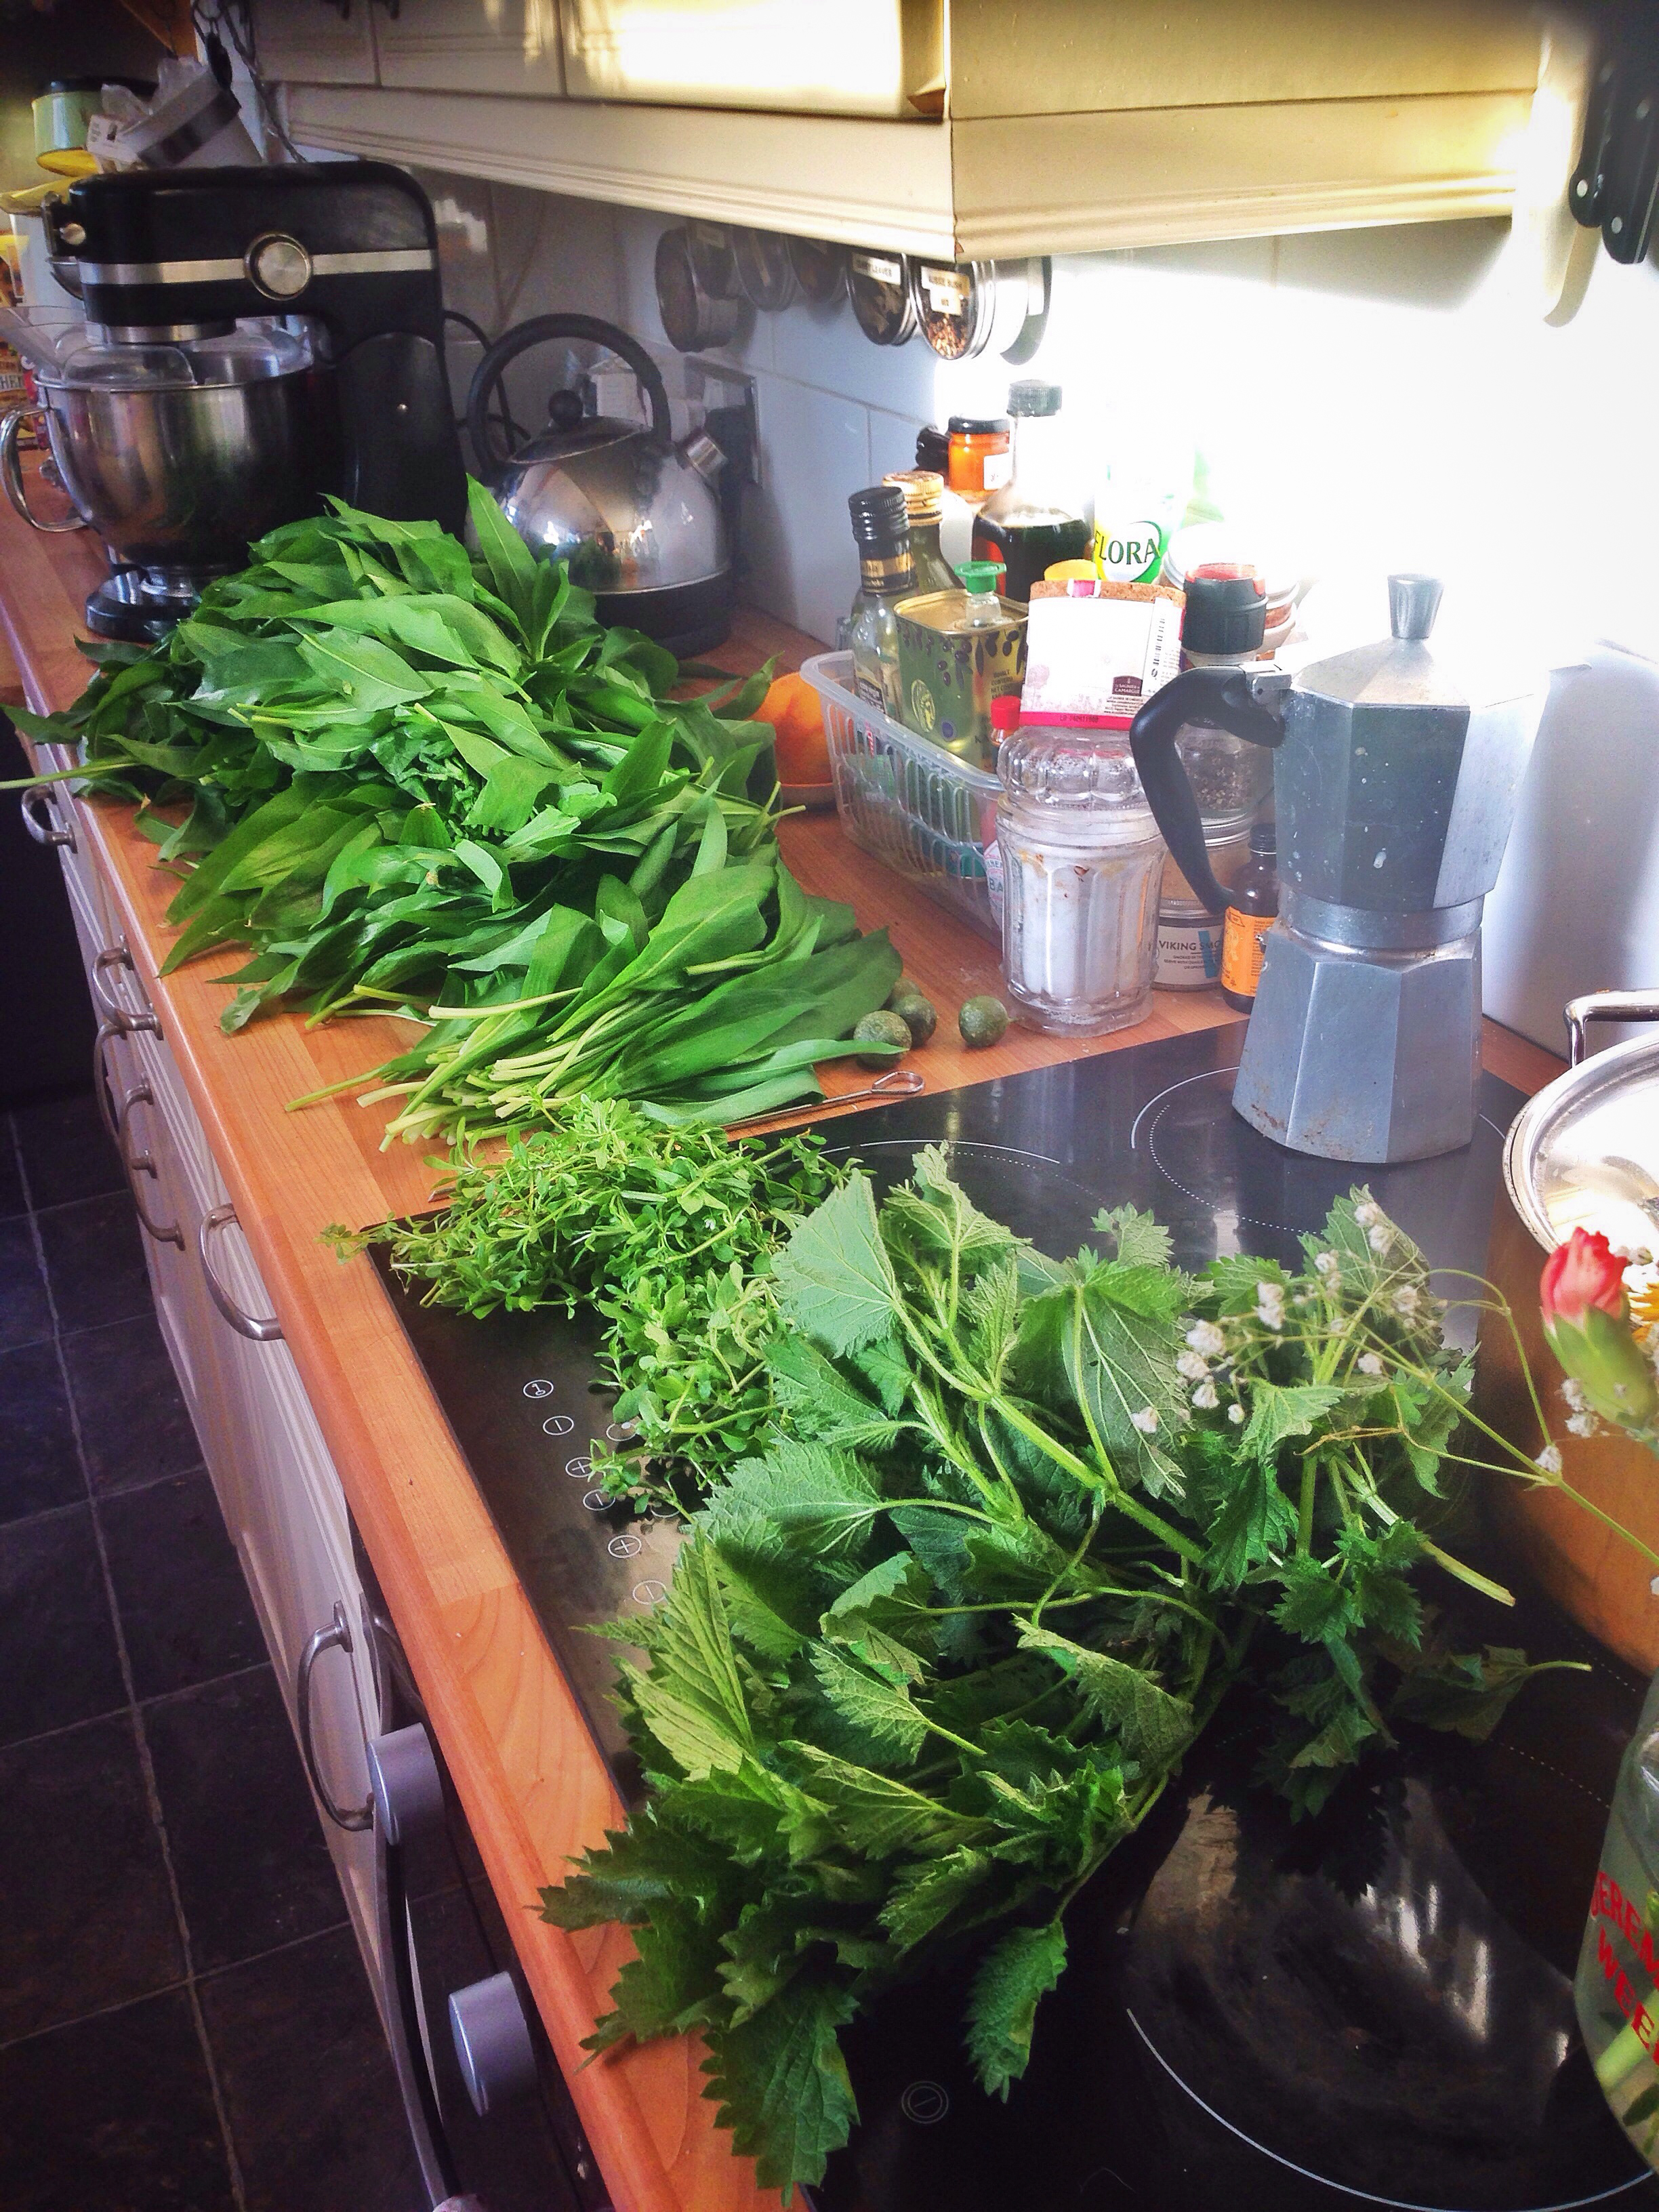 a kitchen full of foraged wild garlic, nettles, goose grass and chickweed